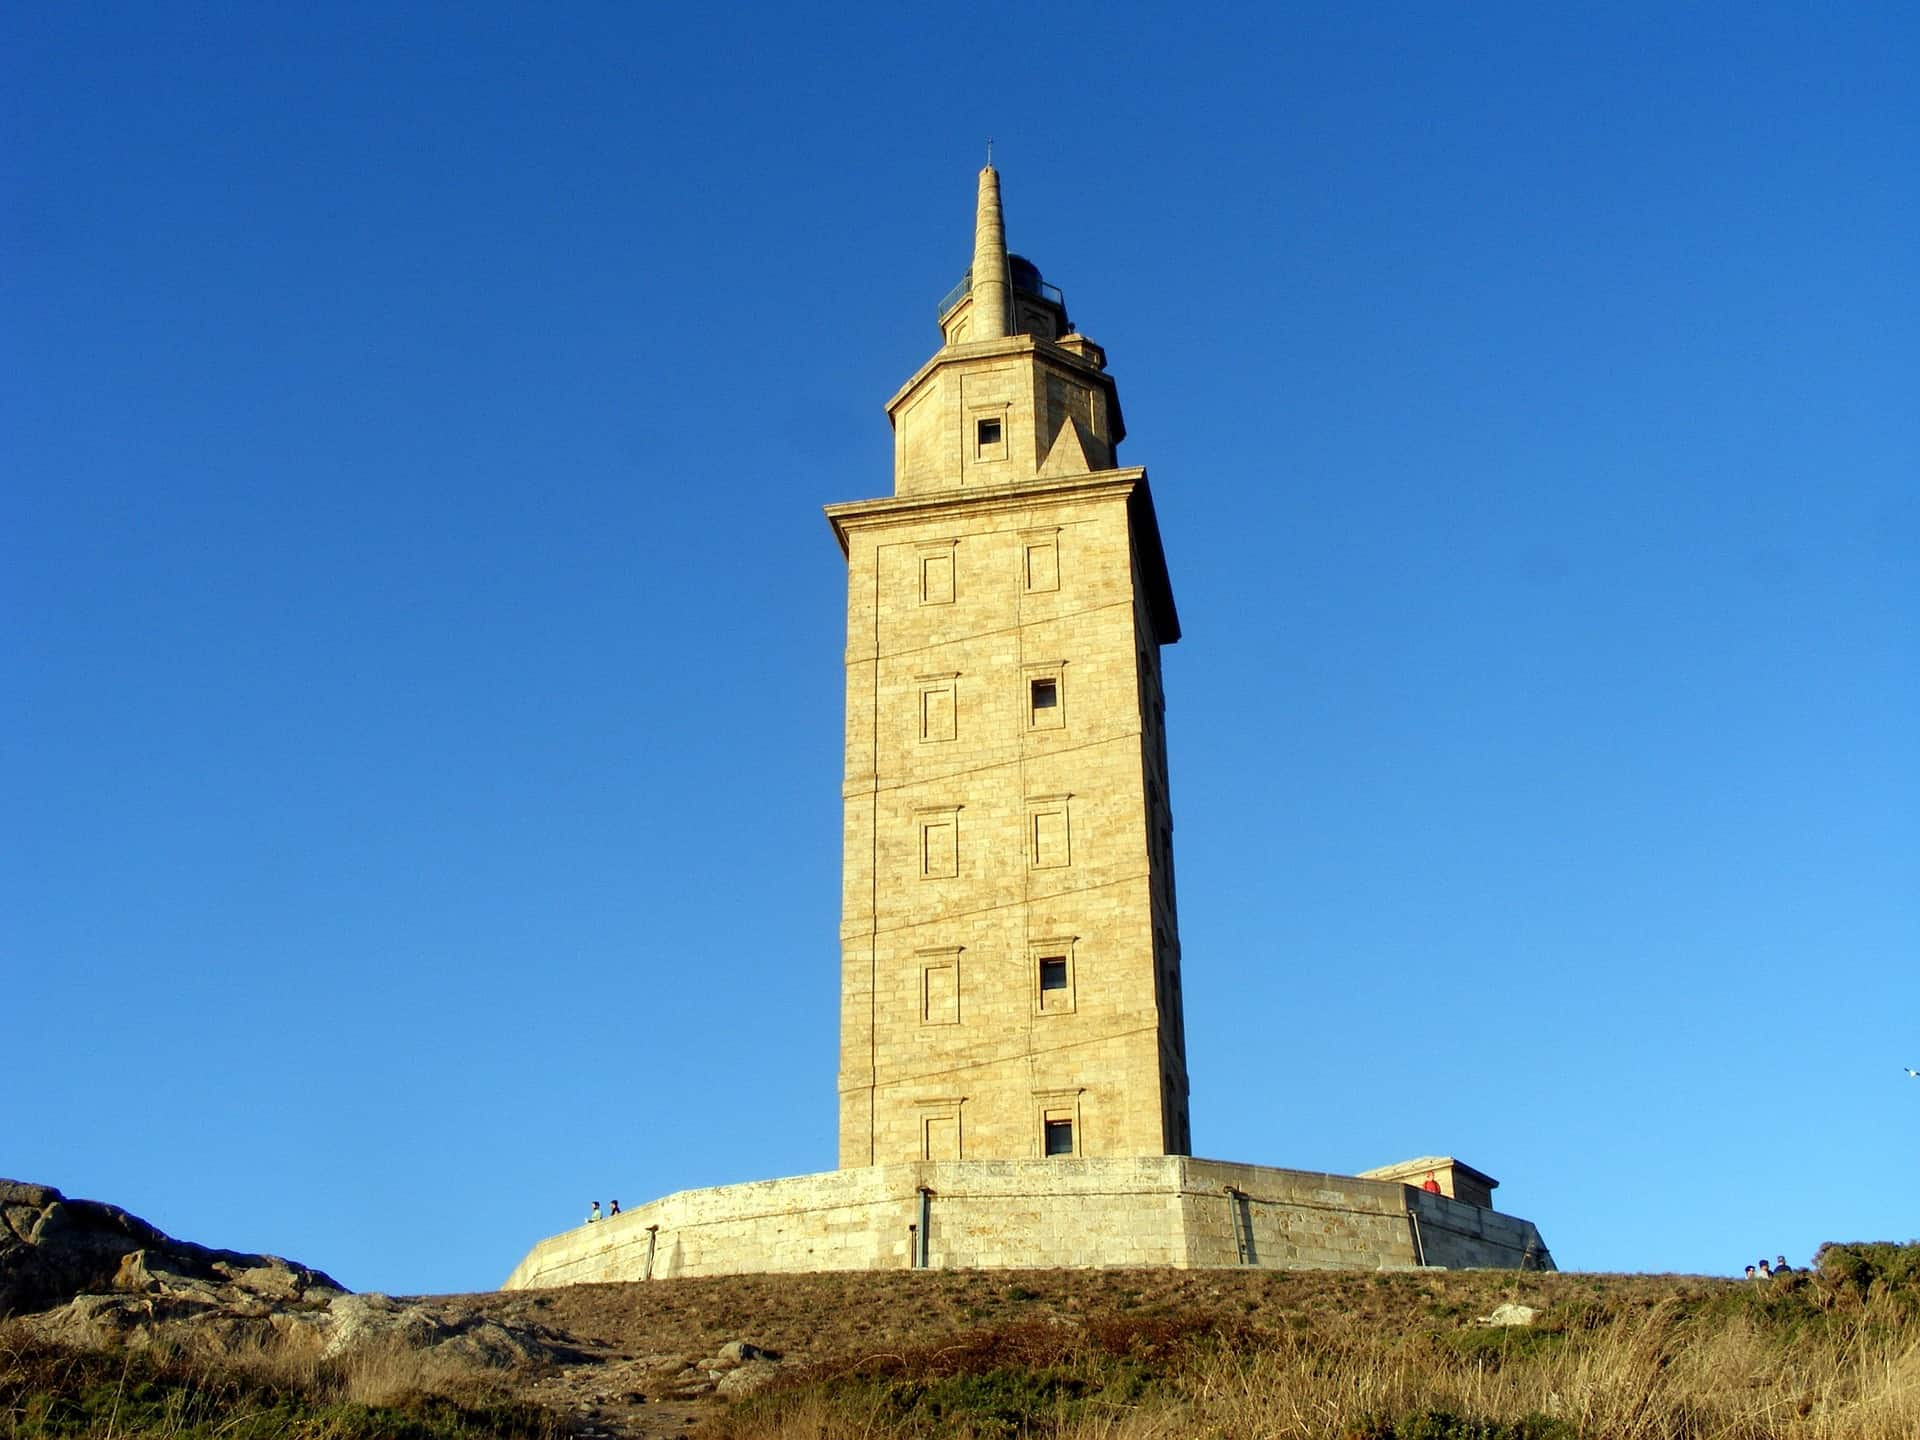 Spain - Galicia - Tower of Hercules UNESCO World Heritage Site Lighthouse